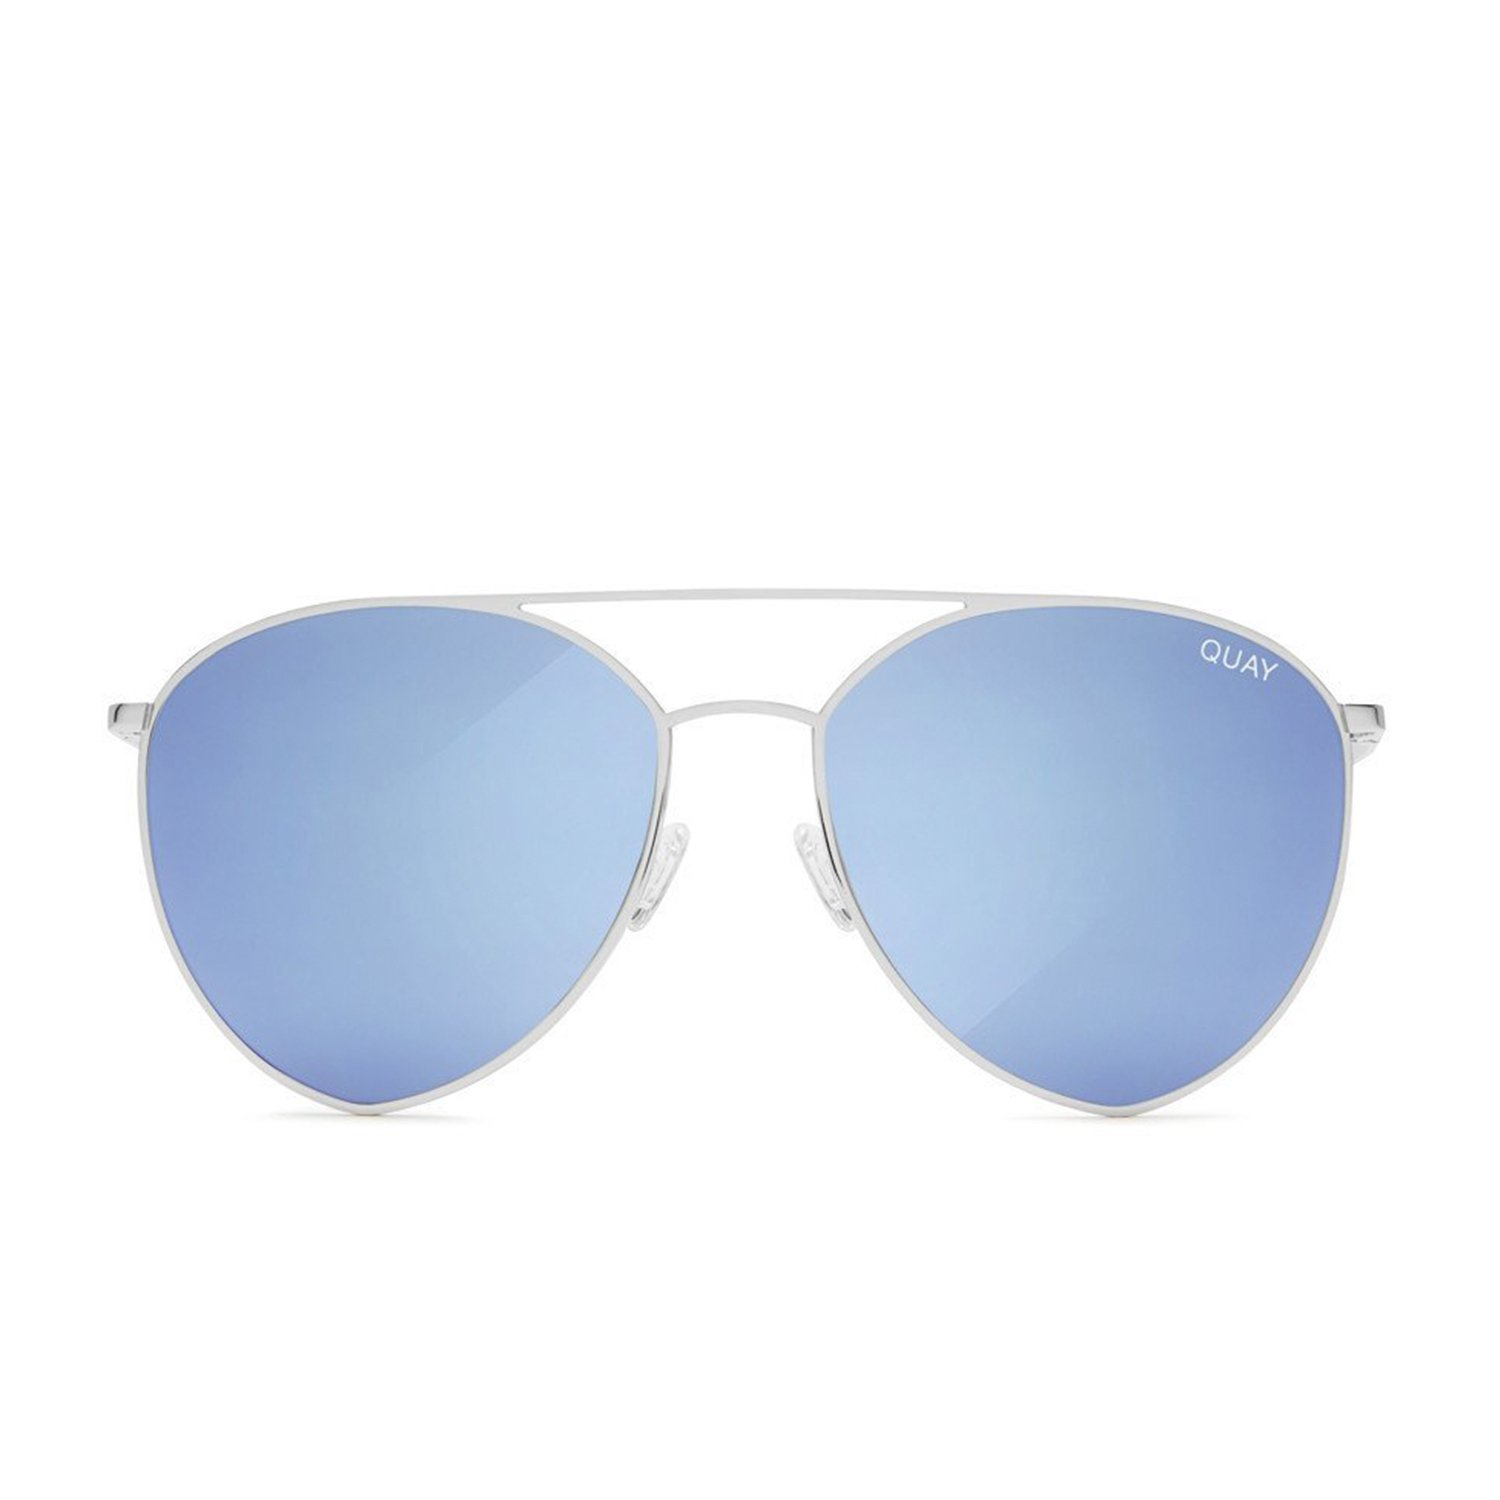 5618a565d5 Amazon.com  Quay Australia INDIO Women s Sunglasses Jasmine Aviator  Teardrop - Silver Blue   Quay  Clothing